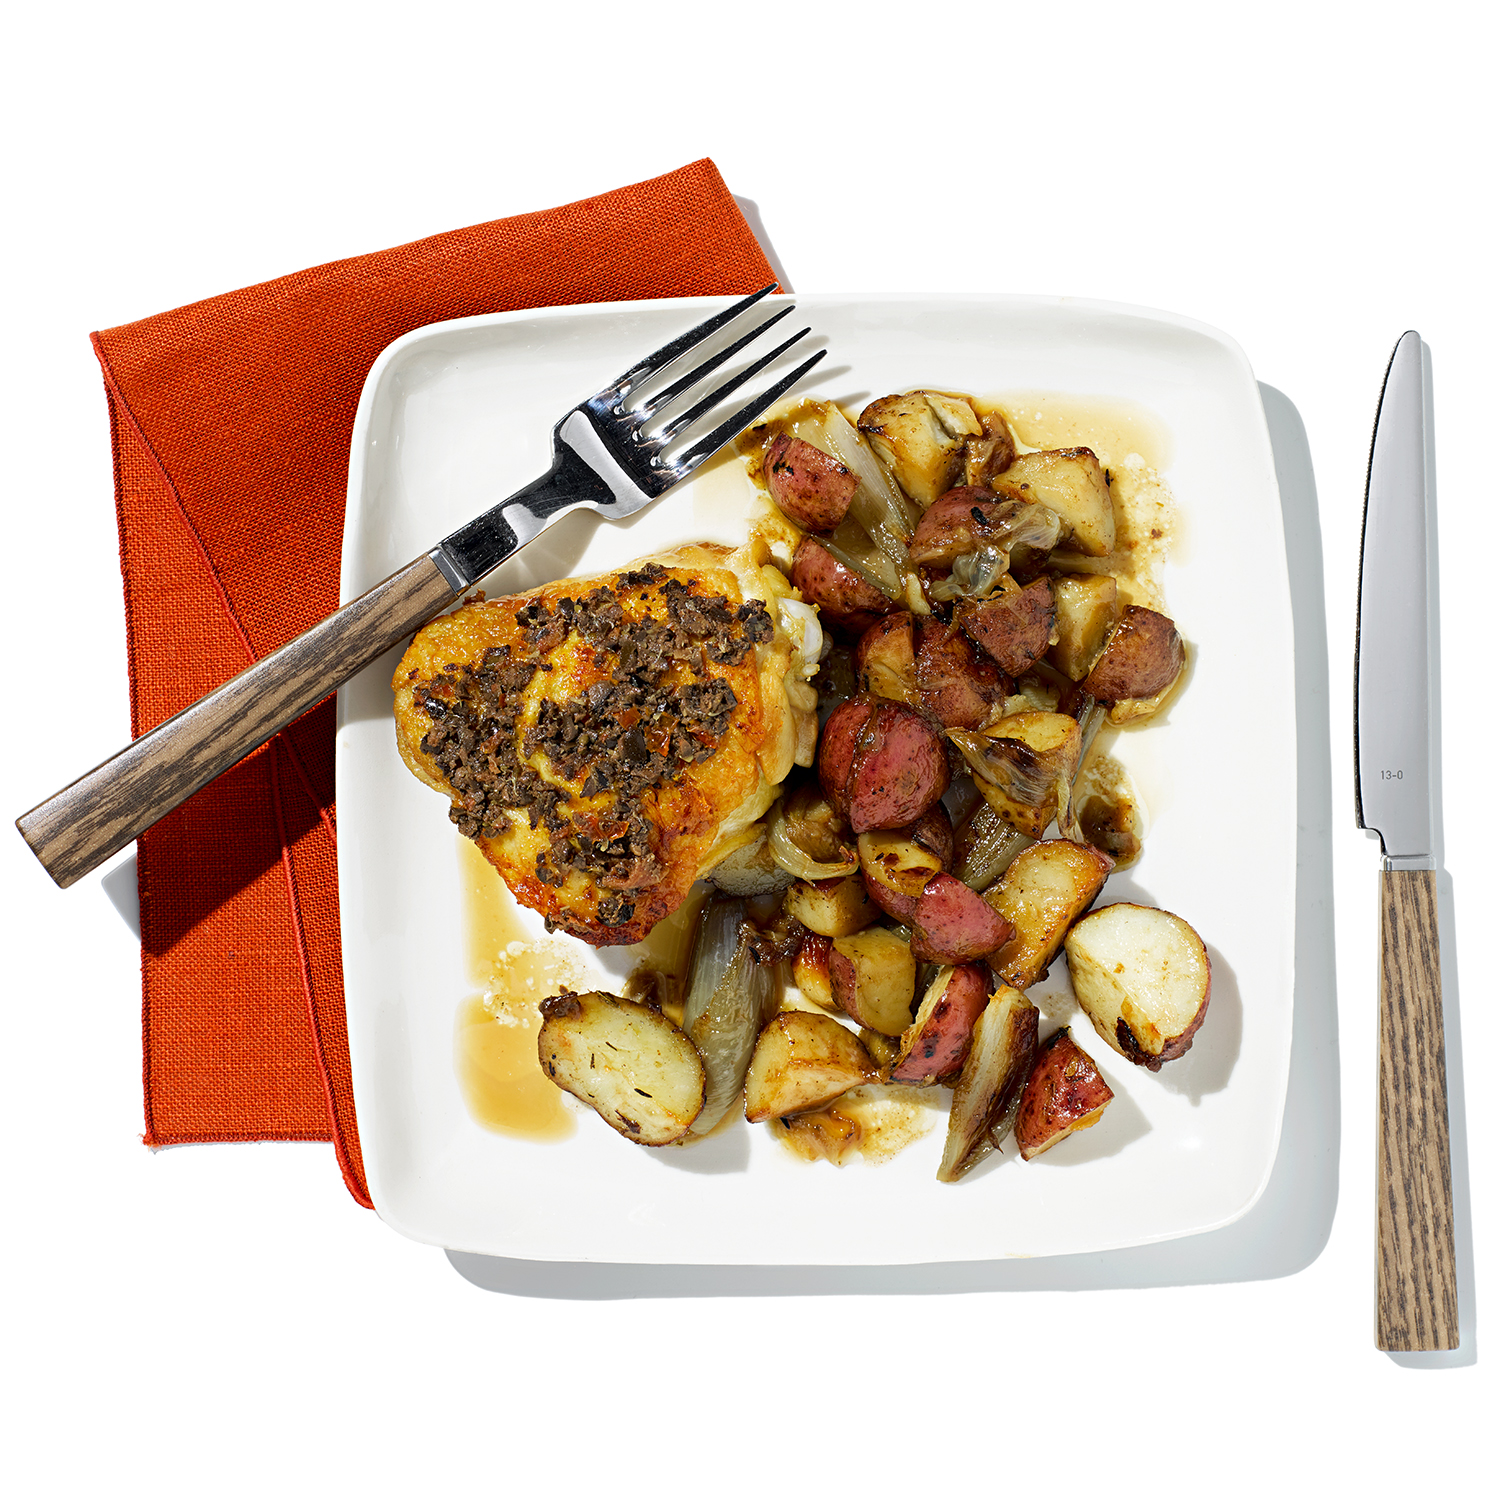 Roasted Black-Olive Chicken and Potatoes